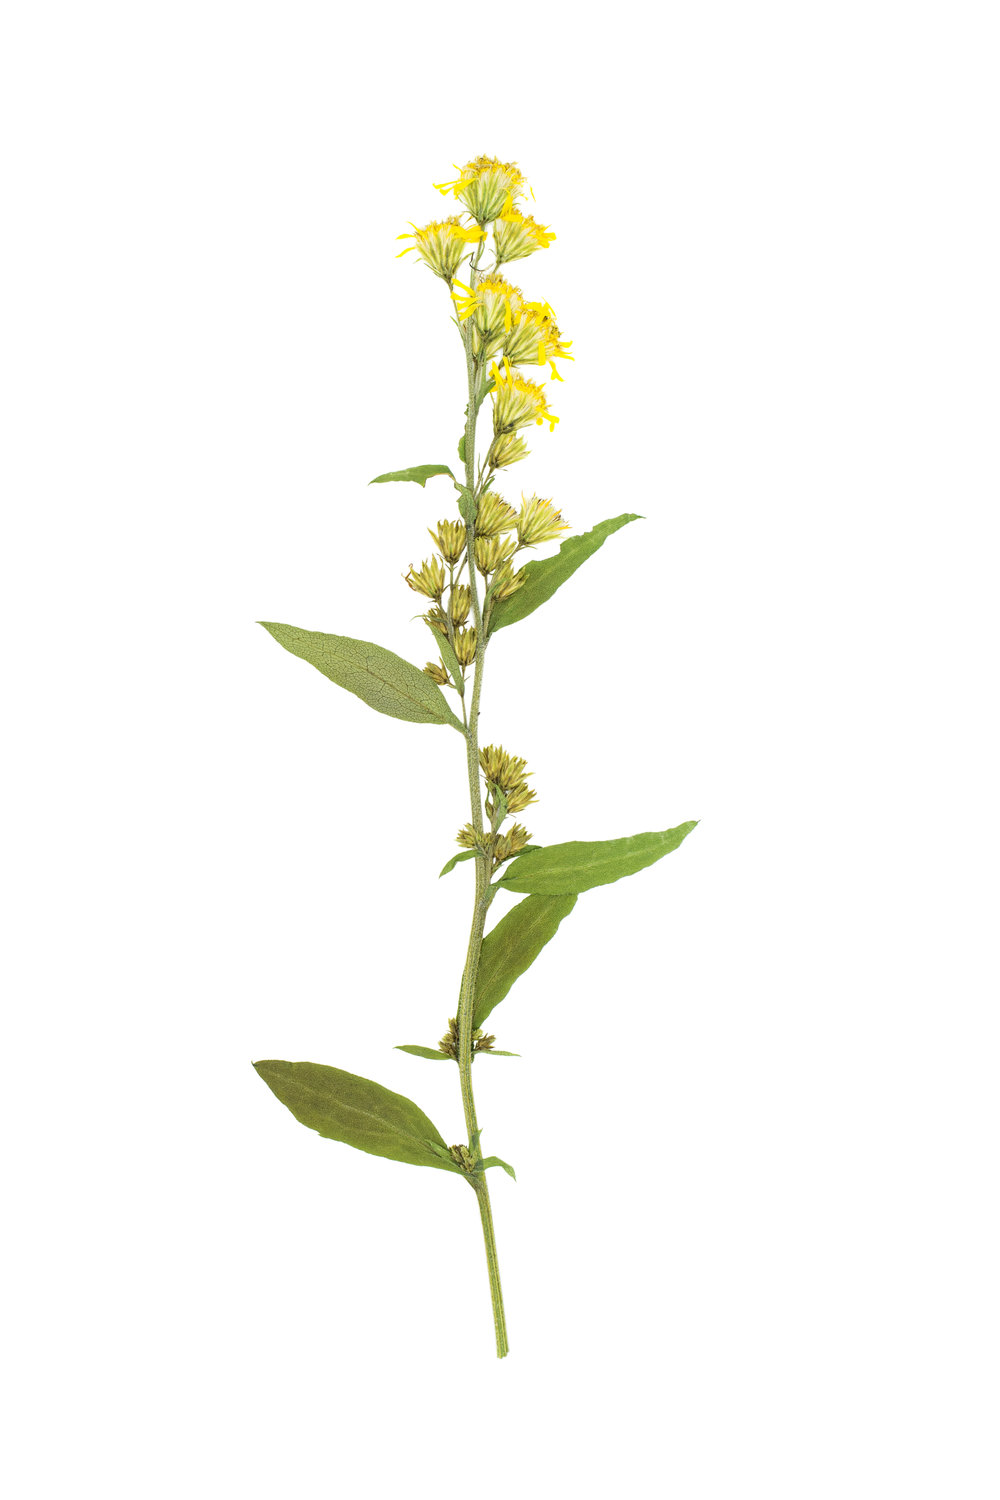 European Goldenrod / Solidago virgaurea